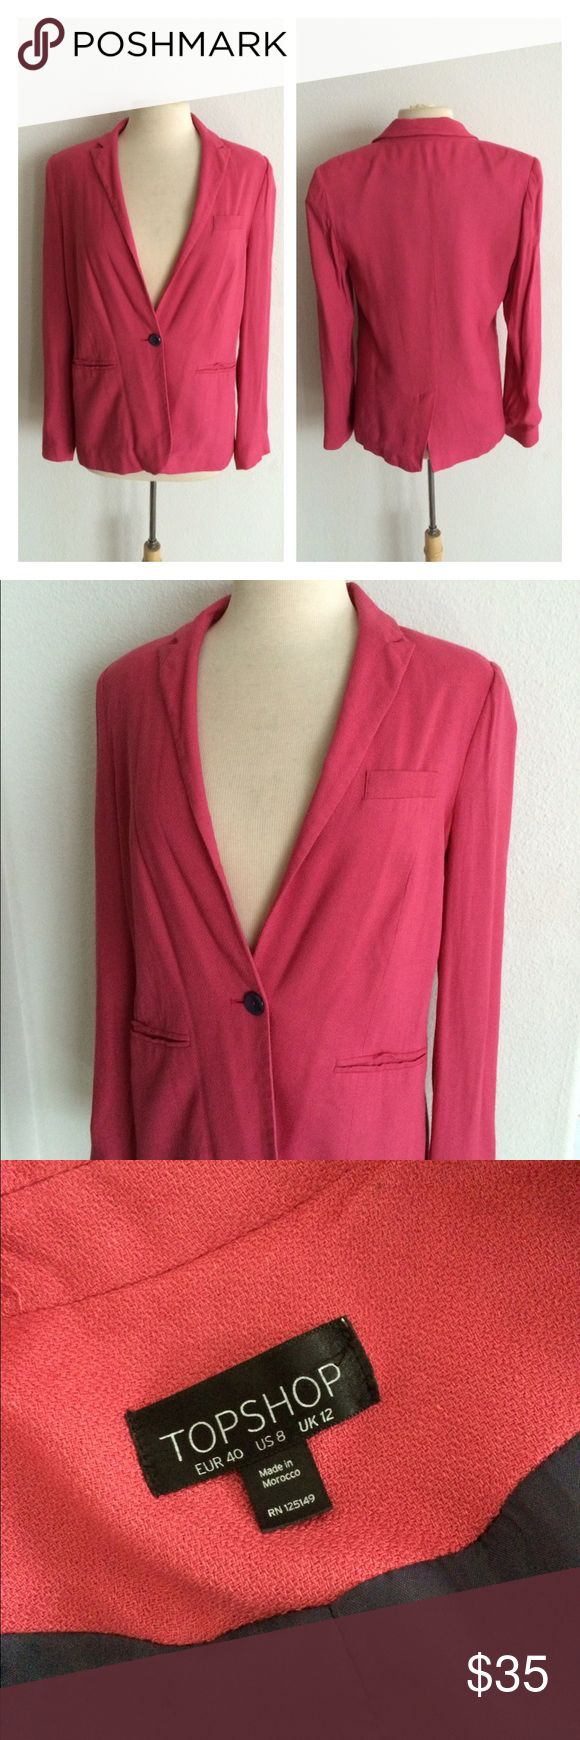 "🆕Topshop pink blazer Topshop pink blazer. Size 8. Measures 27"" long with a 38"" bust. Front pockets aren't functional. Lightly padded shoulders. Plain charcoal gray lining. Exterior is 100% viscose and the lining is 100% polyester. Single button closure. Very good used condition!  🚫NO TRADES🚫 💲Reasonable offers accepted💲 💰Great bundle discounts💰 Topshop Jackets & Coats Blazers"